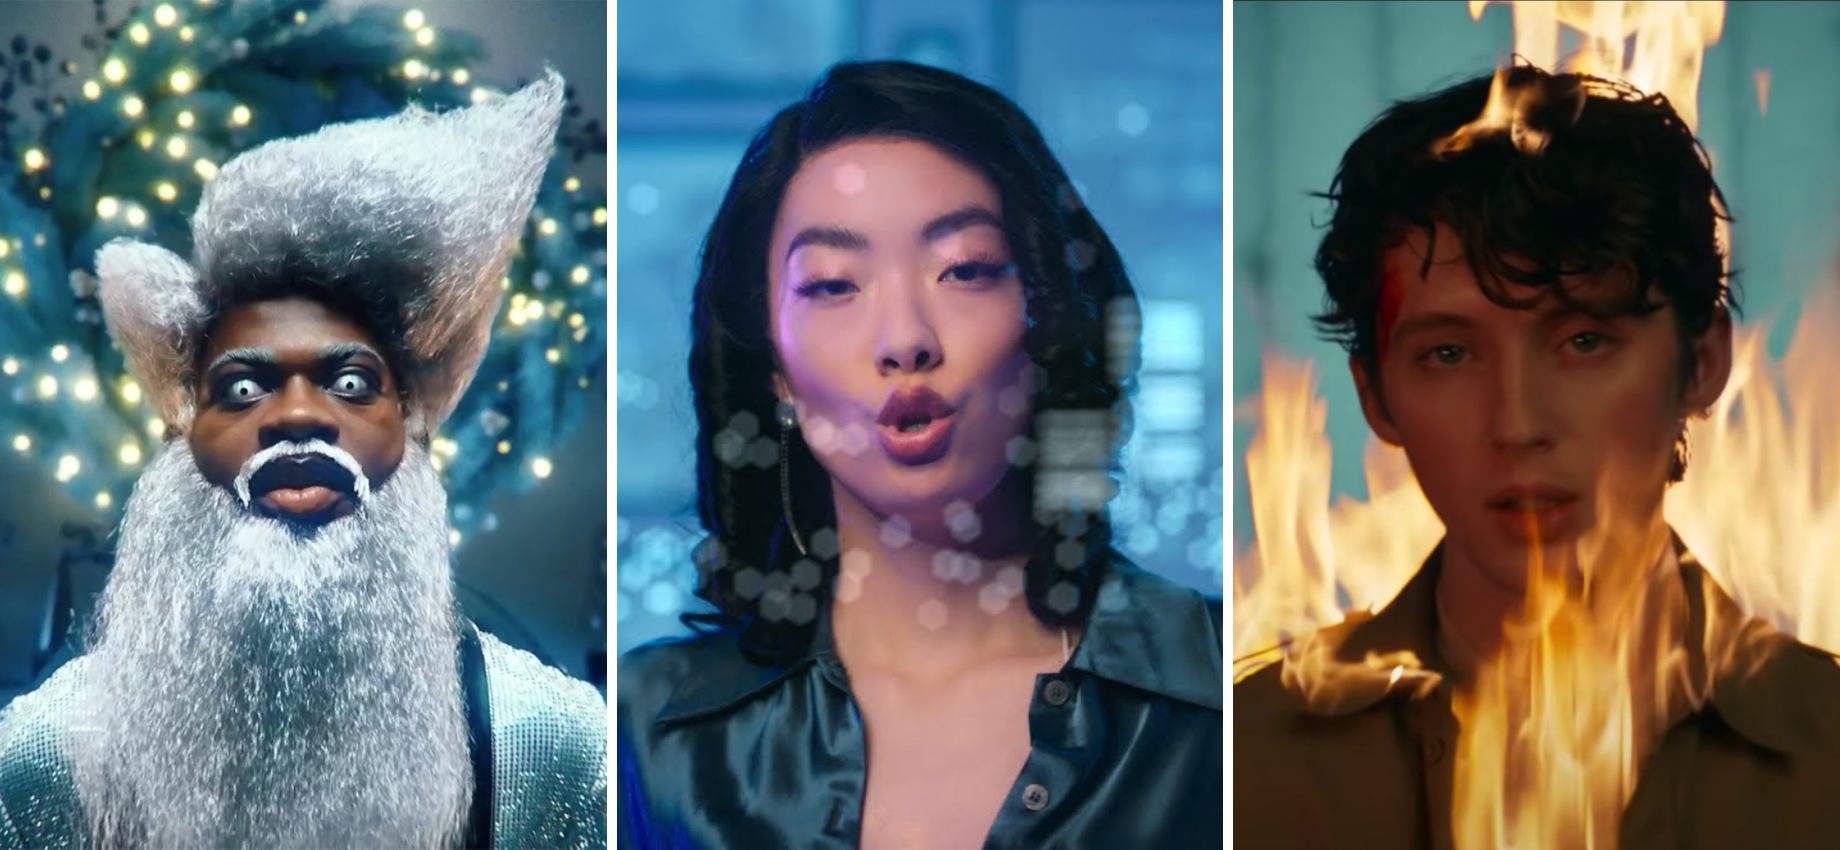 Our Favorite LGBTQ+ Artists of 2020